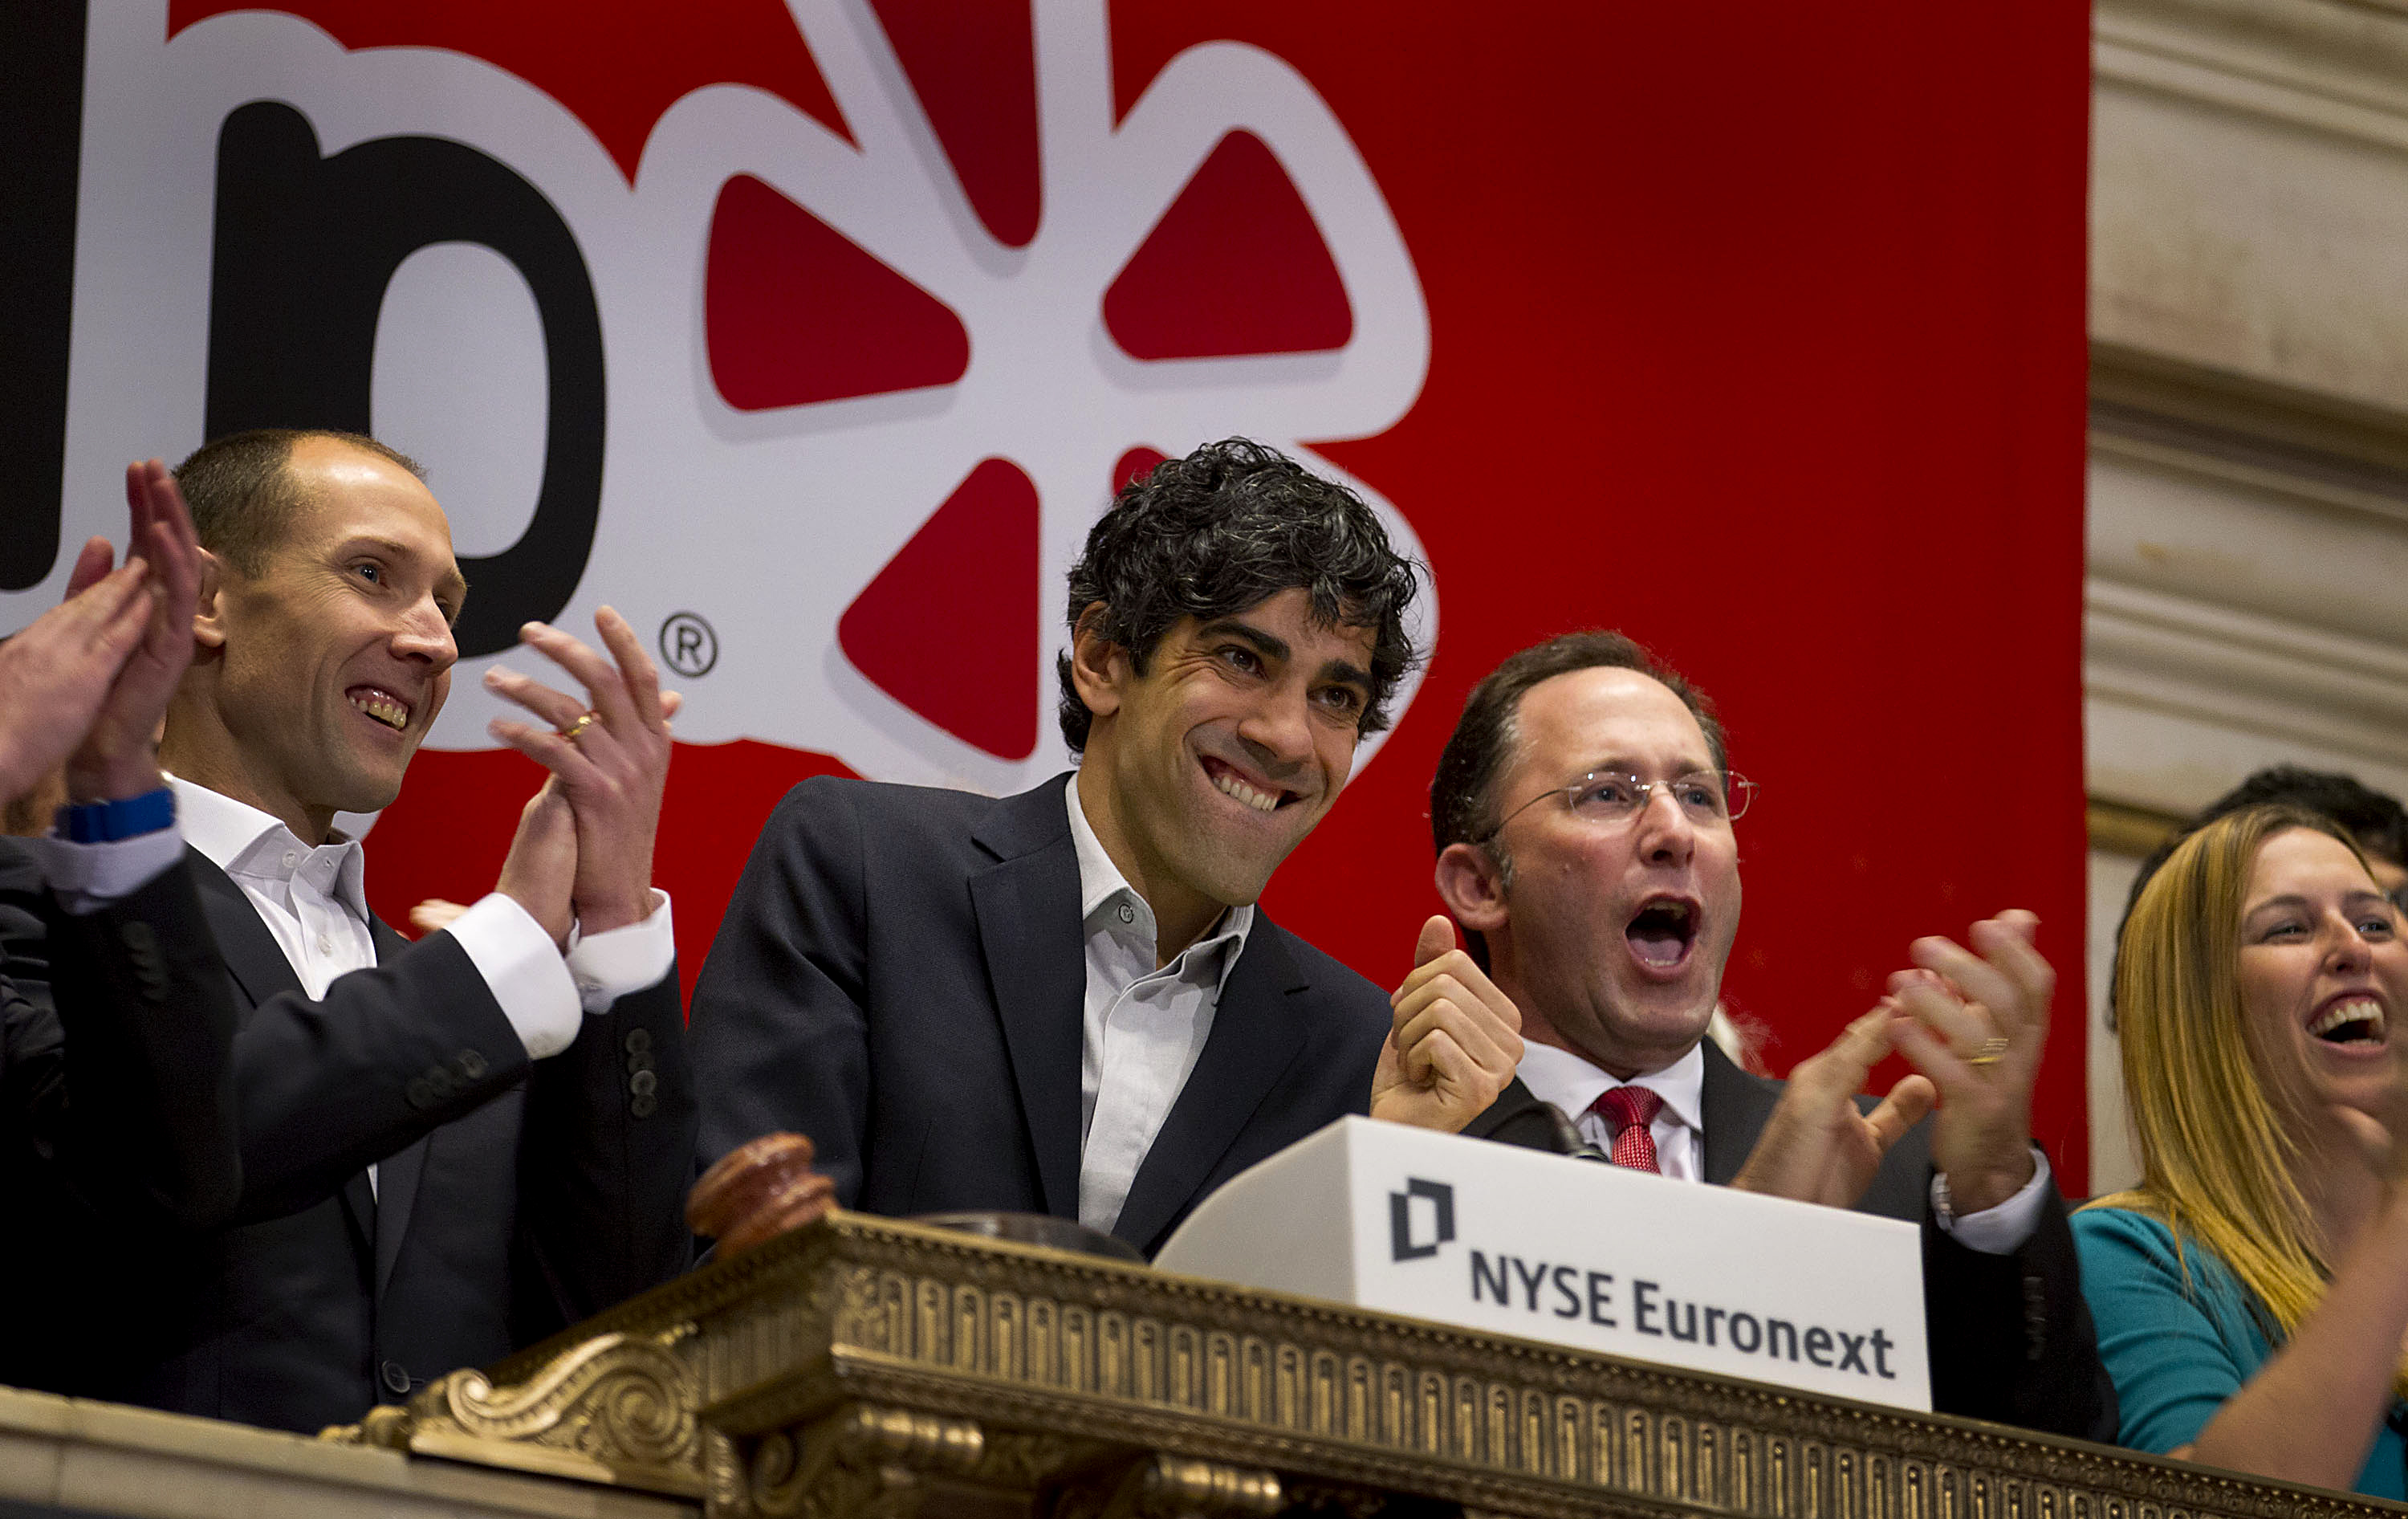 Yelp CEO Jeremy Stoppelman Rings The Opening Bell At The NYSE